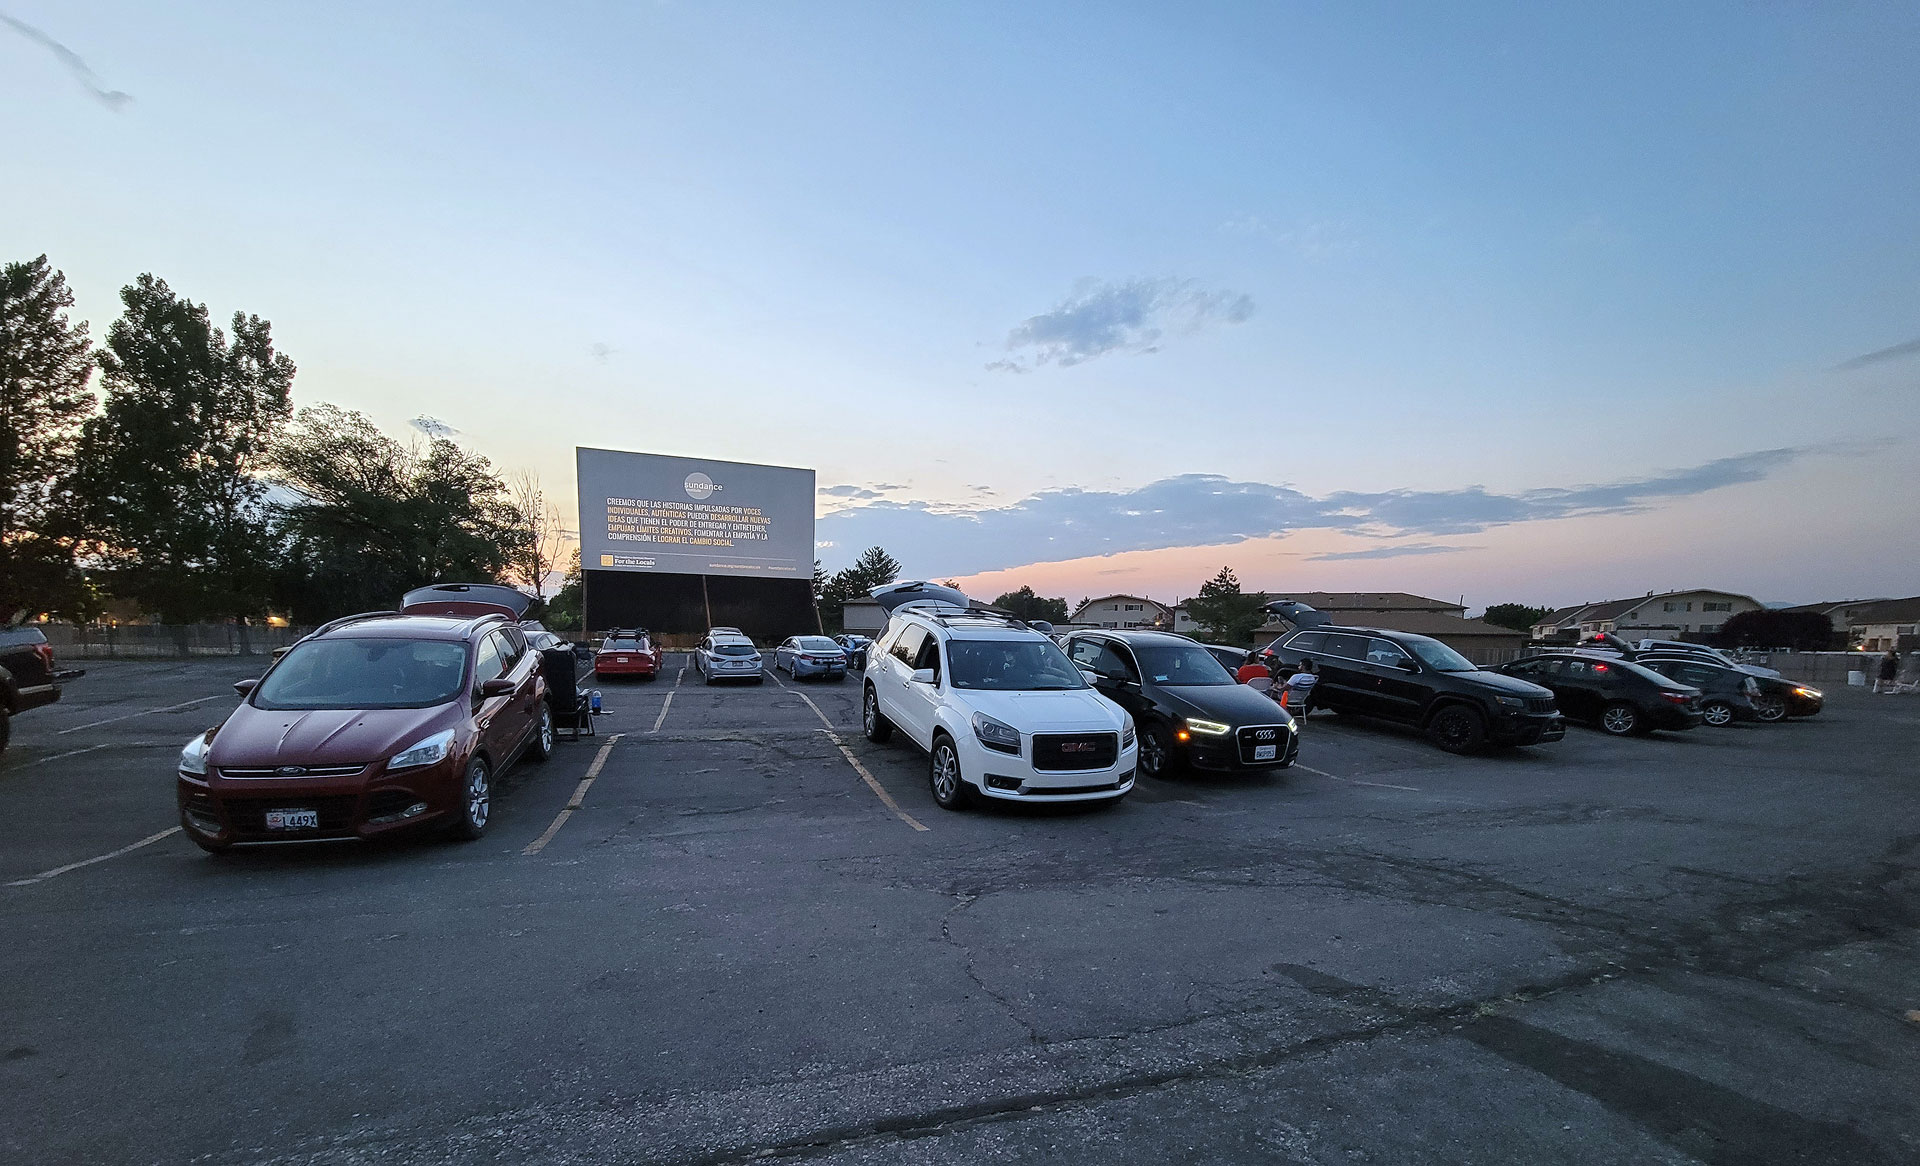 Cars backed up to giant film projection screen